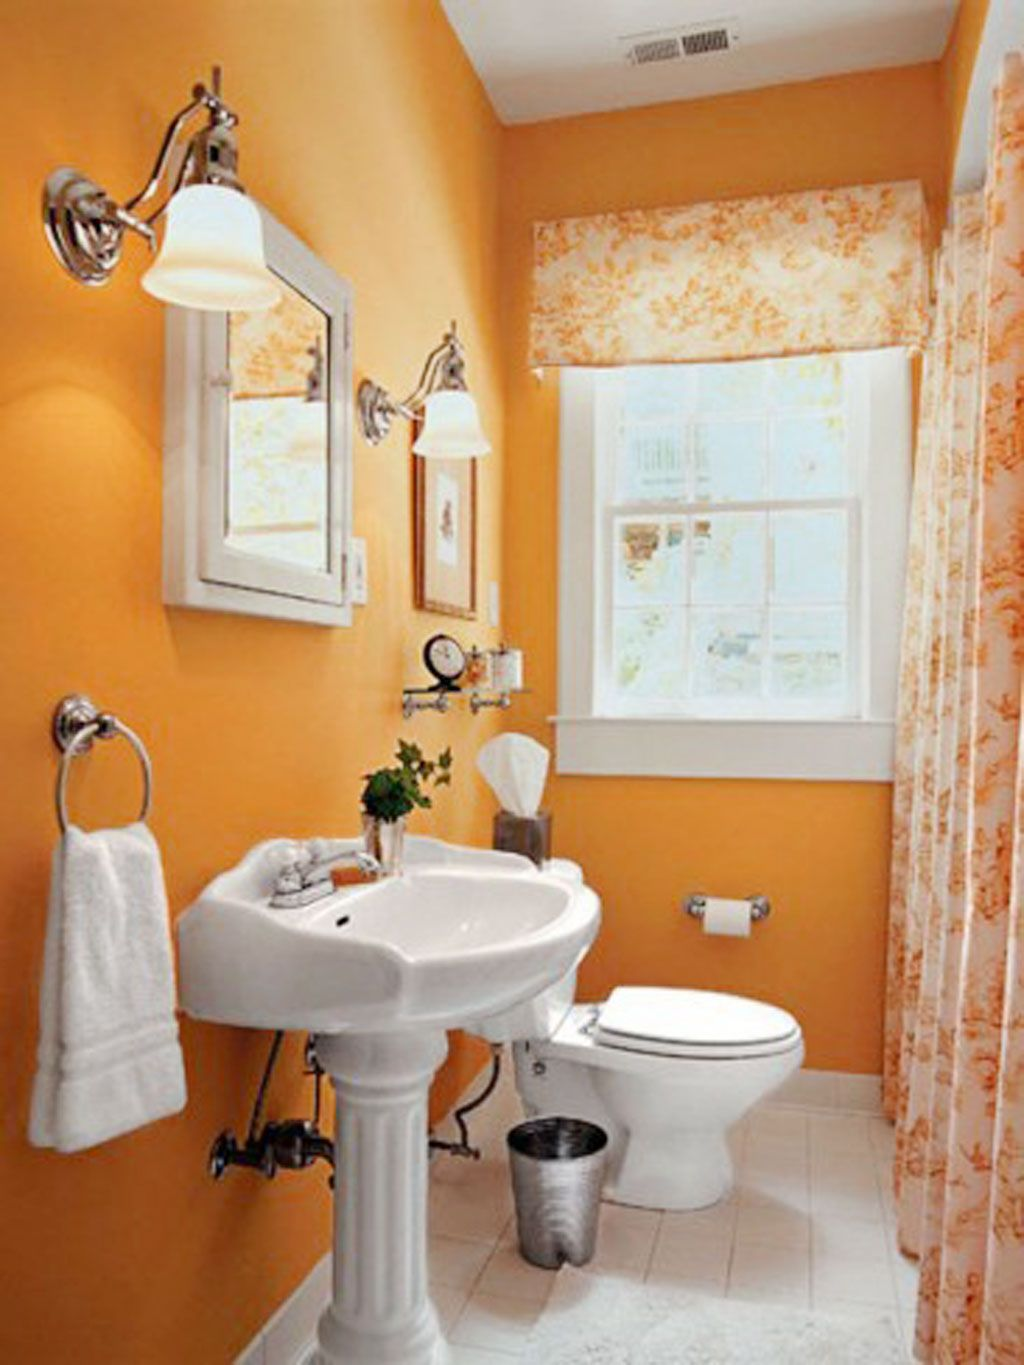 divine renovations bathrooms colour pop unique small bathroom ideas colorful